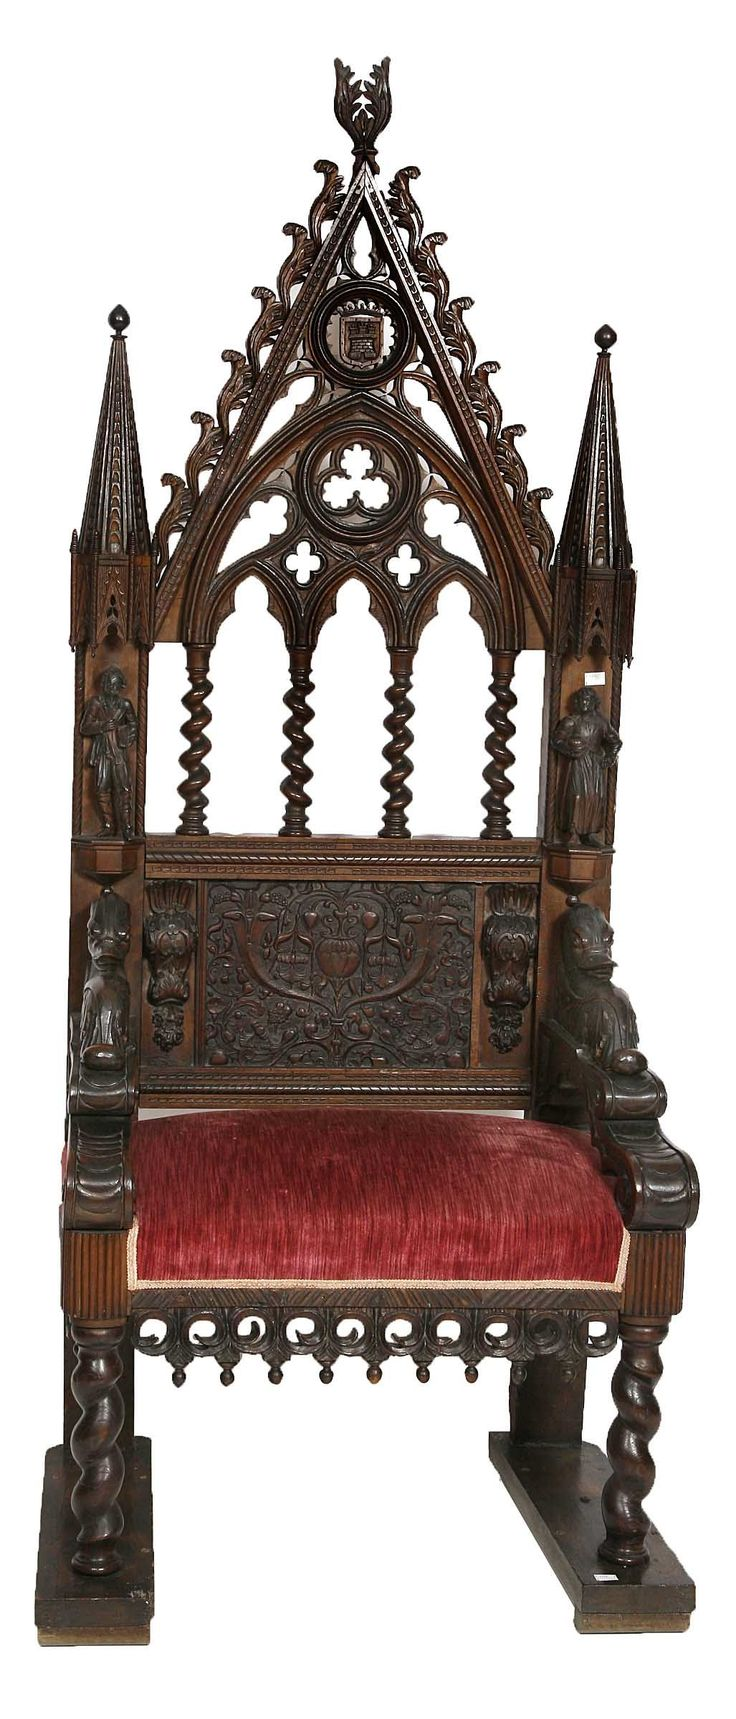 a 19th century carved oak Gothic throne chair (2,000-3,000). - 392 Best Gothic - Artifacts Images On Pinterest The Arts